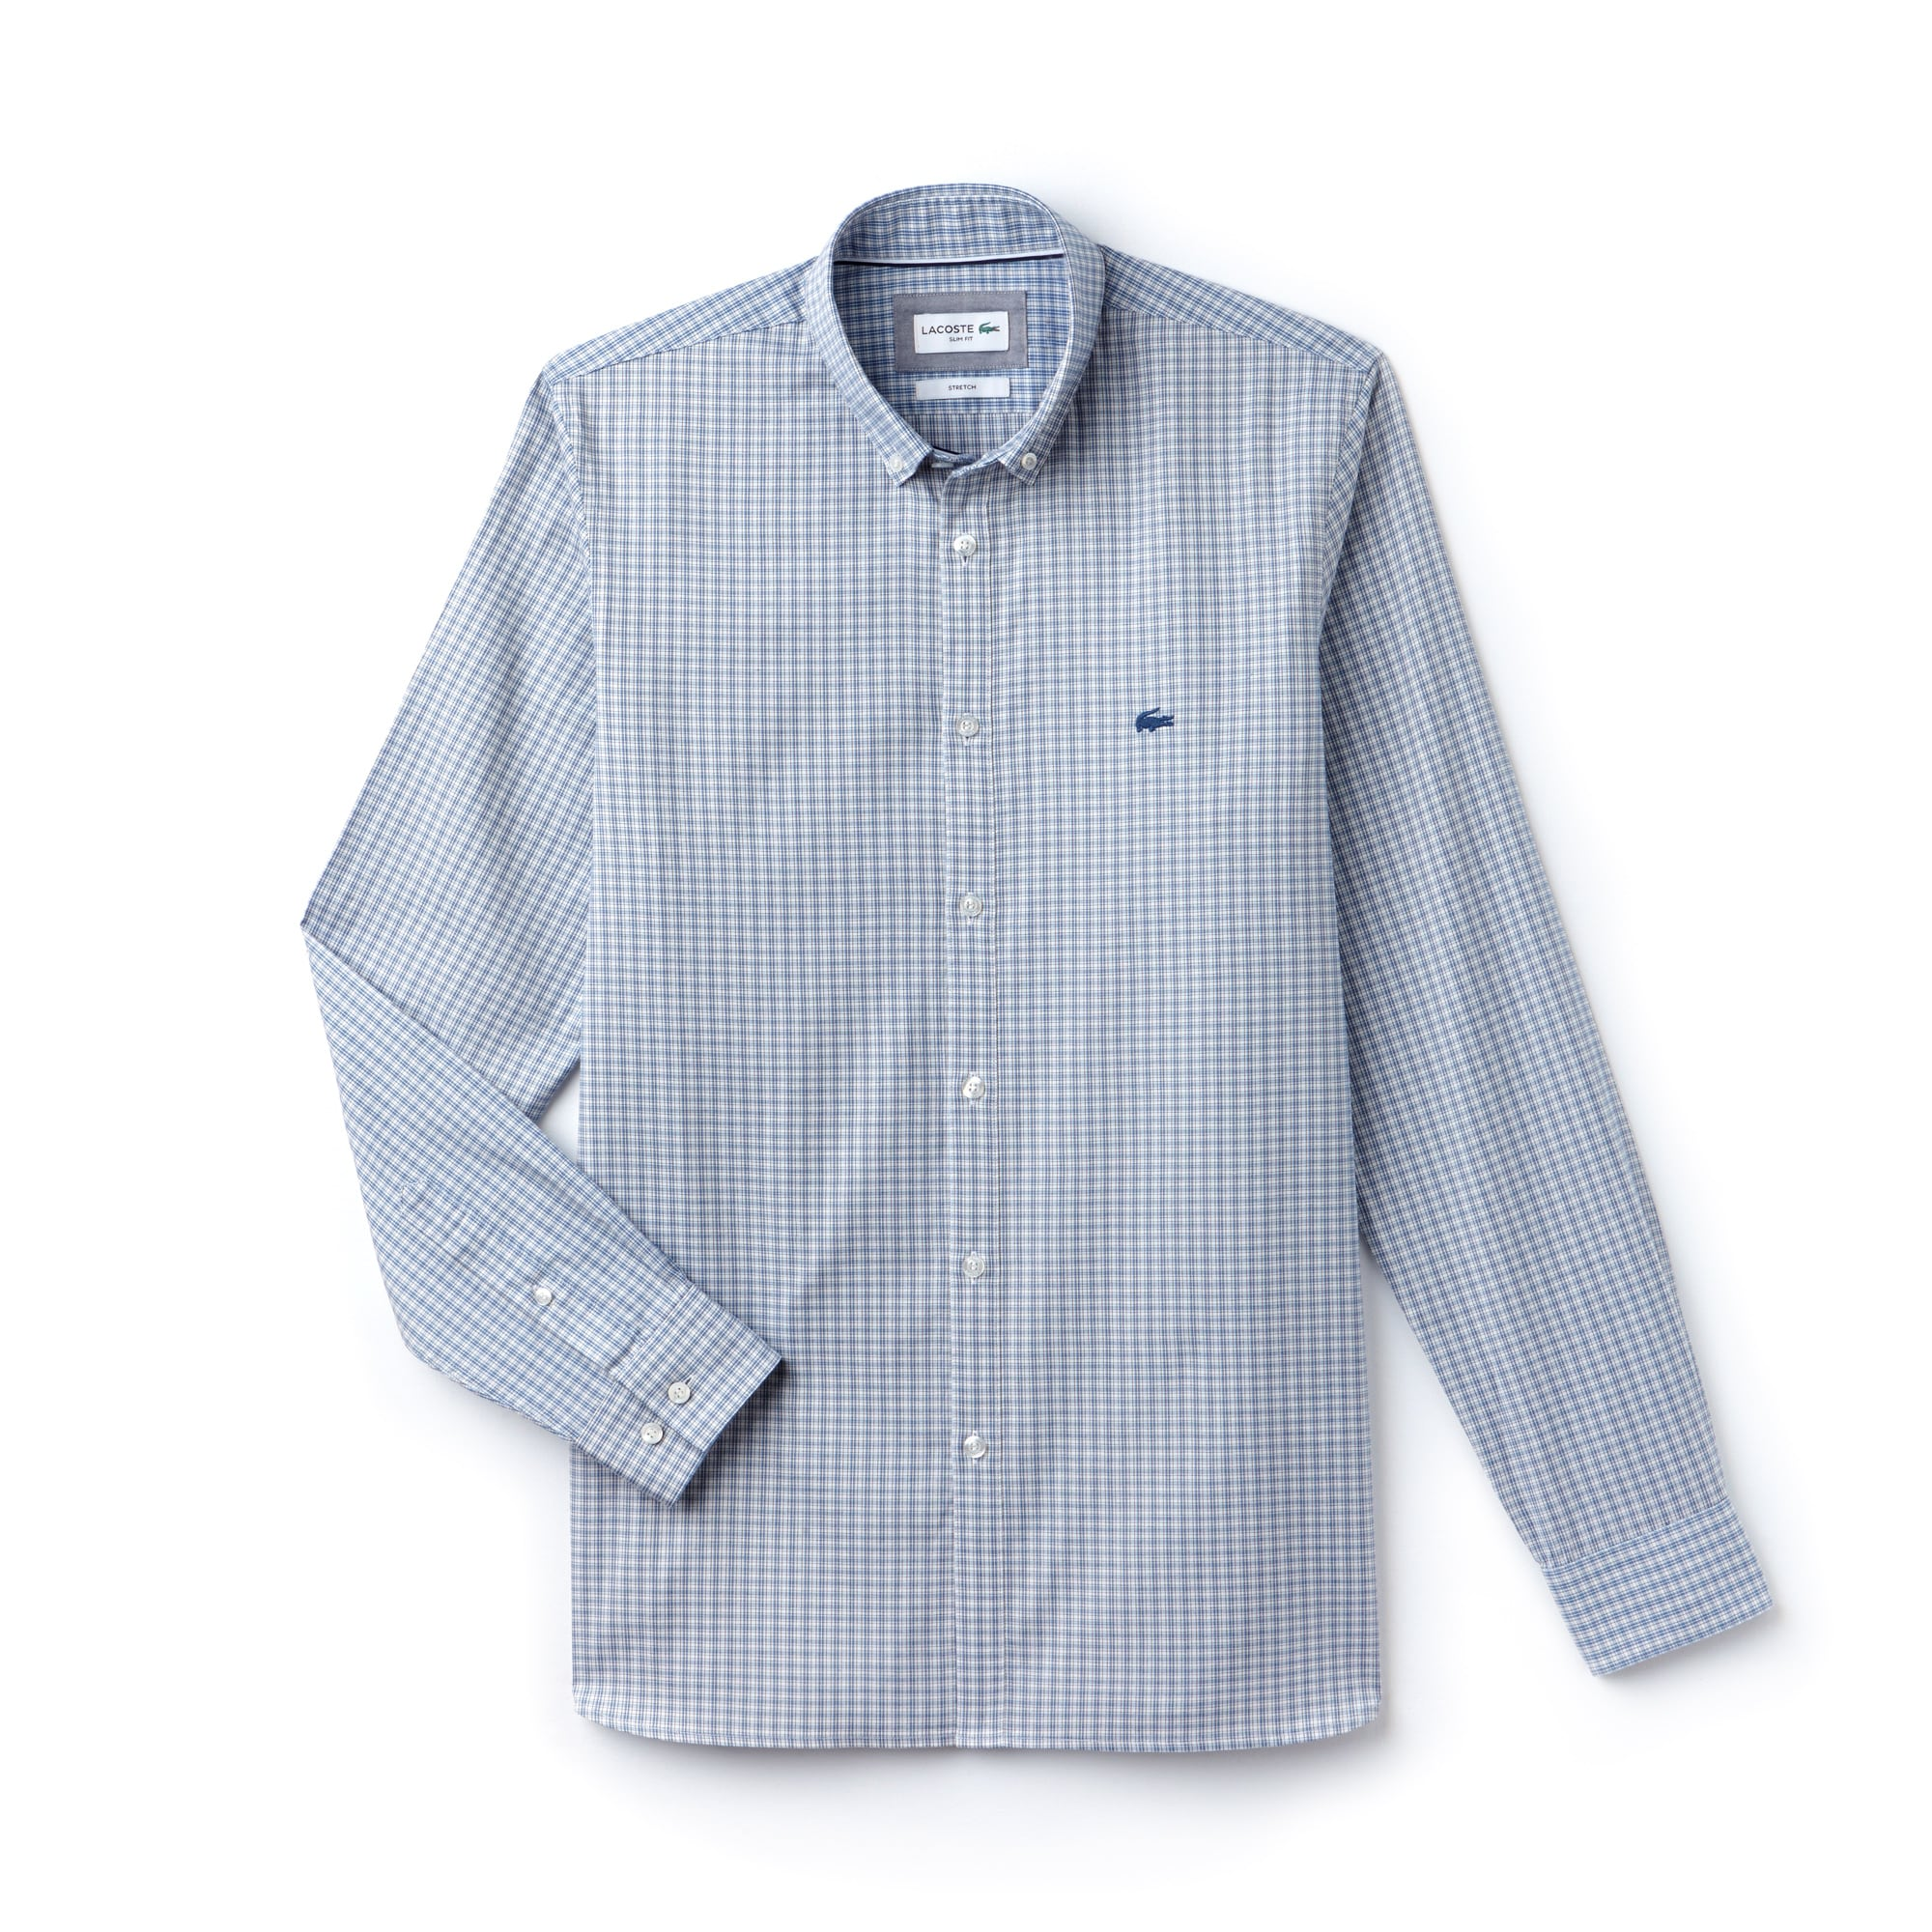 Camicia slim fit in cotone pinpoint stretch a quadretti